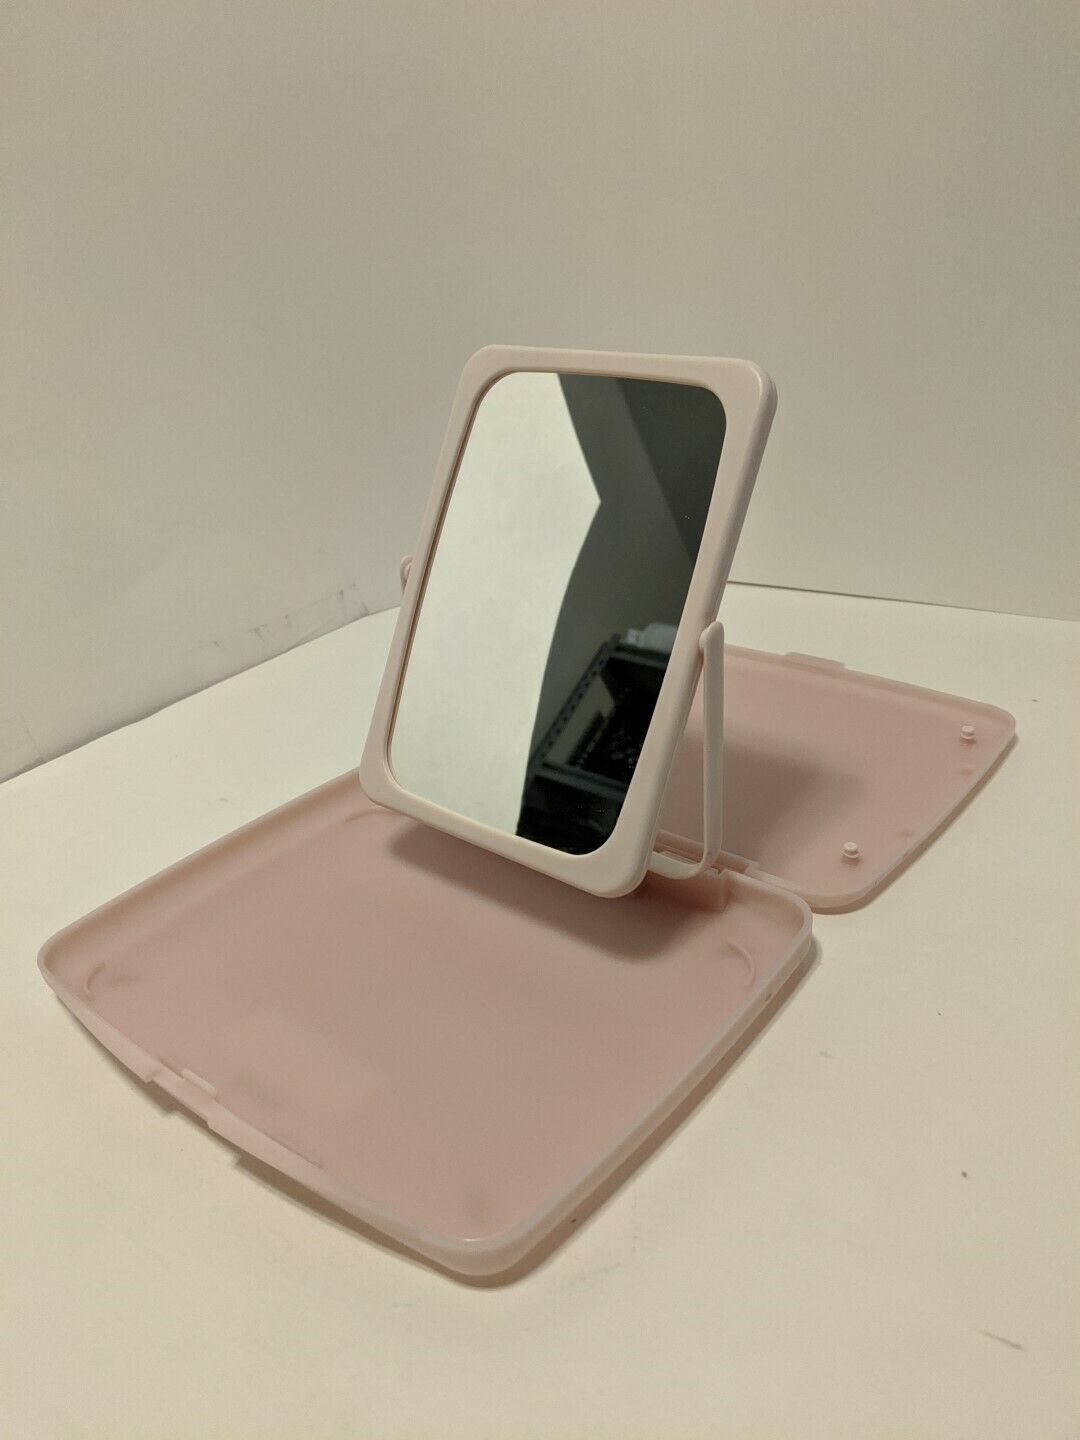 Vintage Mary Kay Travel 2-Sided Mirror Make-up Tray Case in Pink - $7.91